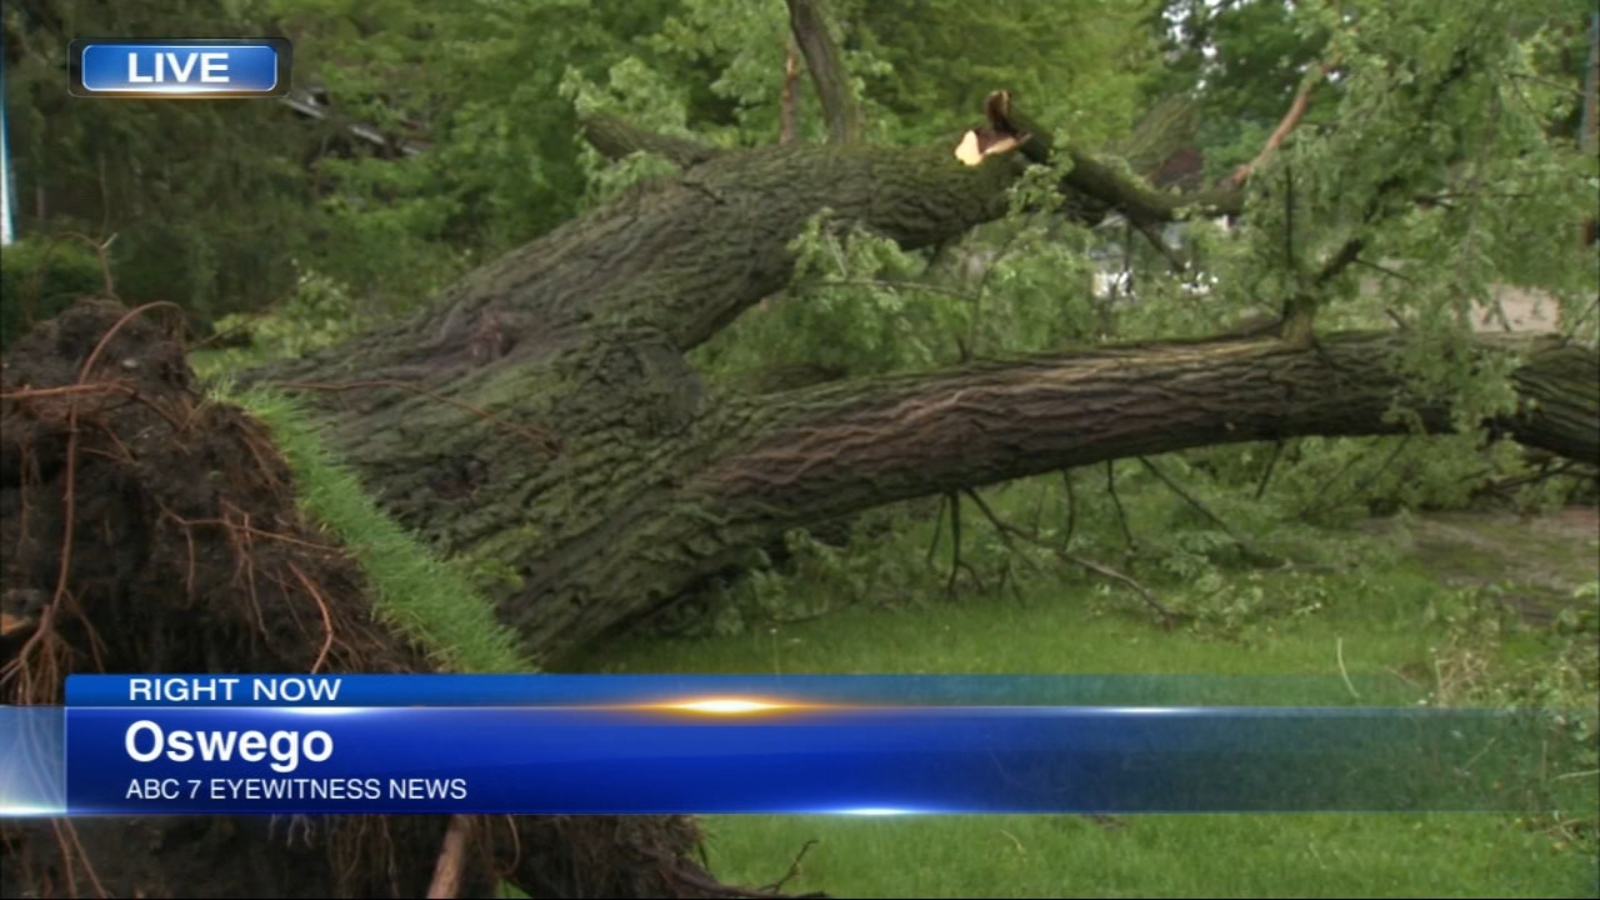 Chicago Weather: Cleanup underway after storms drop hail, topple trees